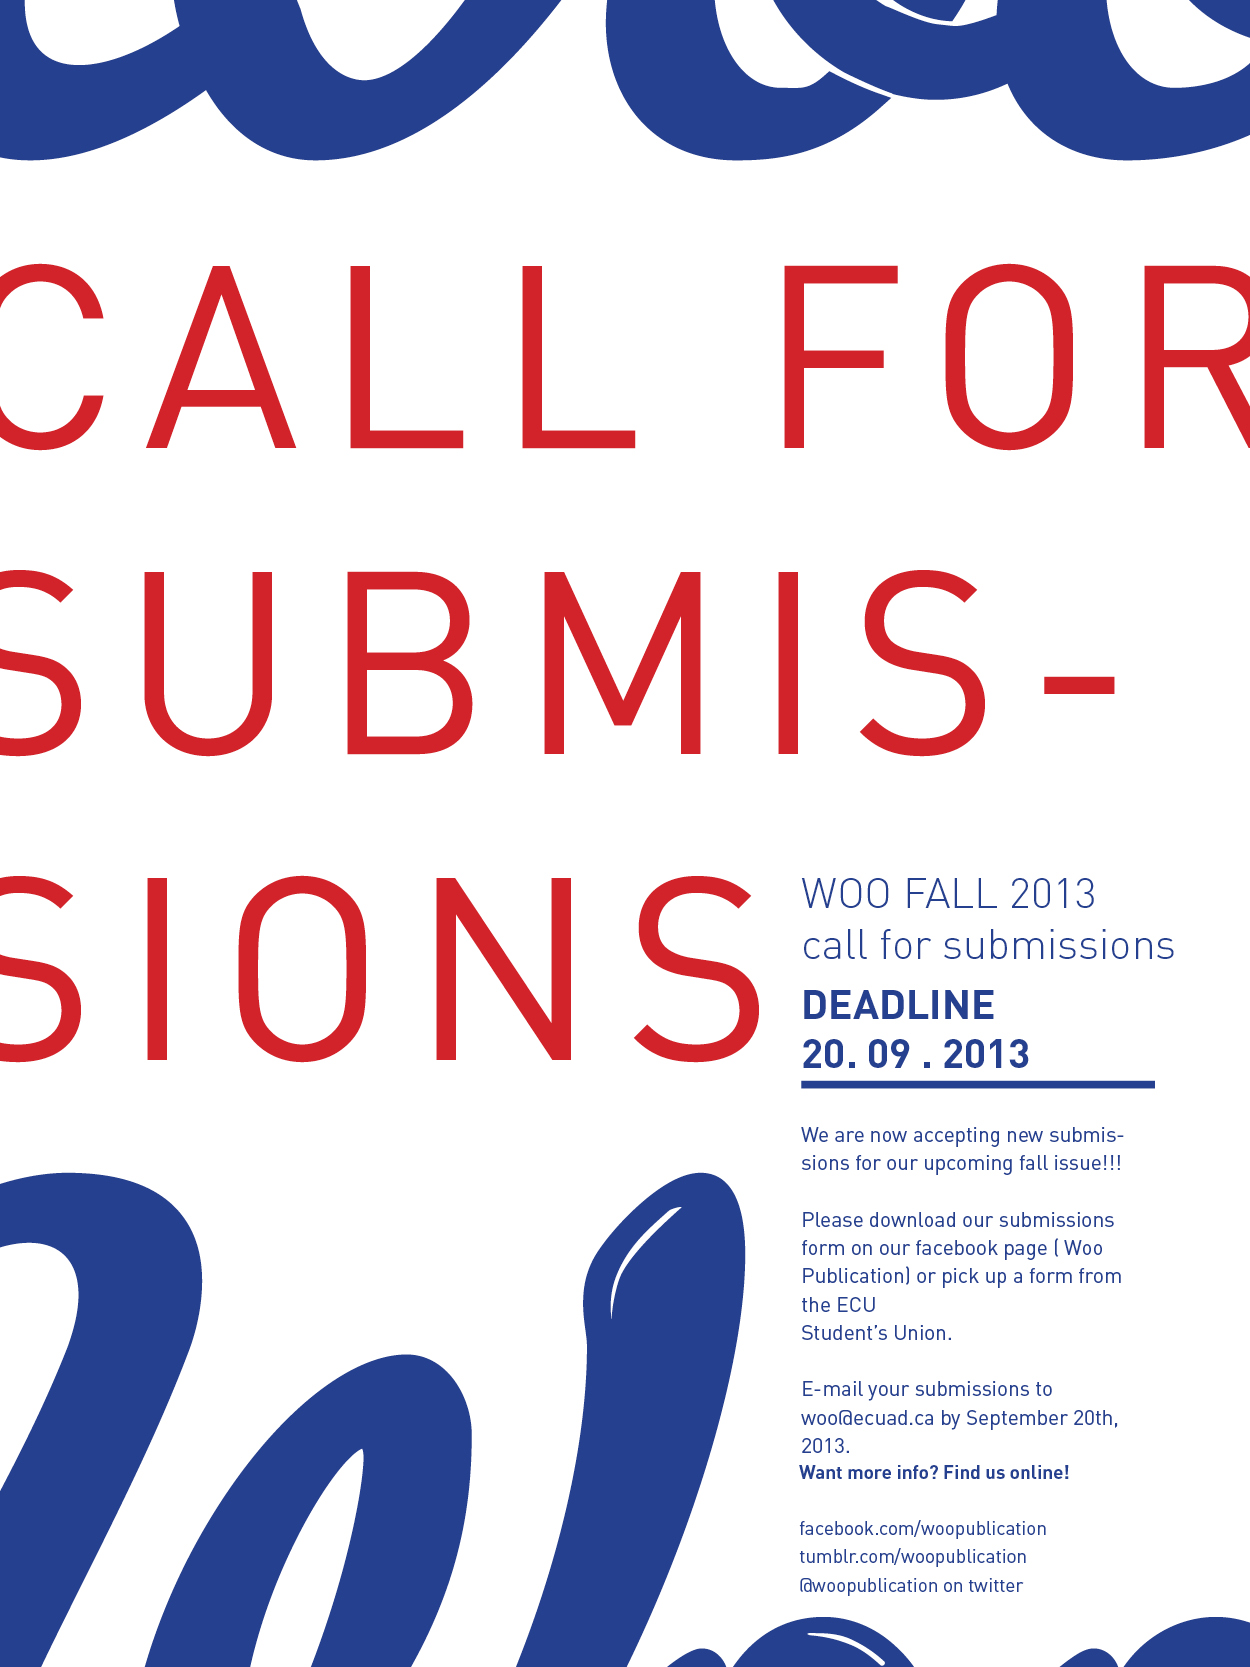 Today is the first day of classes at Emily Carr, so what better of a time to ask for your new submissions!  Woo is now accepting submissions for our Fall 2013 issue (set to come out at the end of October!)  Download the submissions form here or on our facebook page!